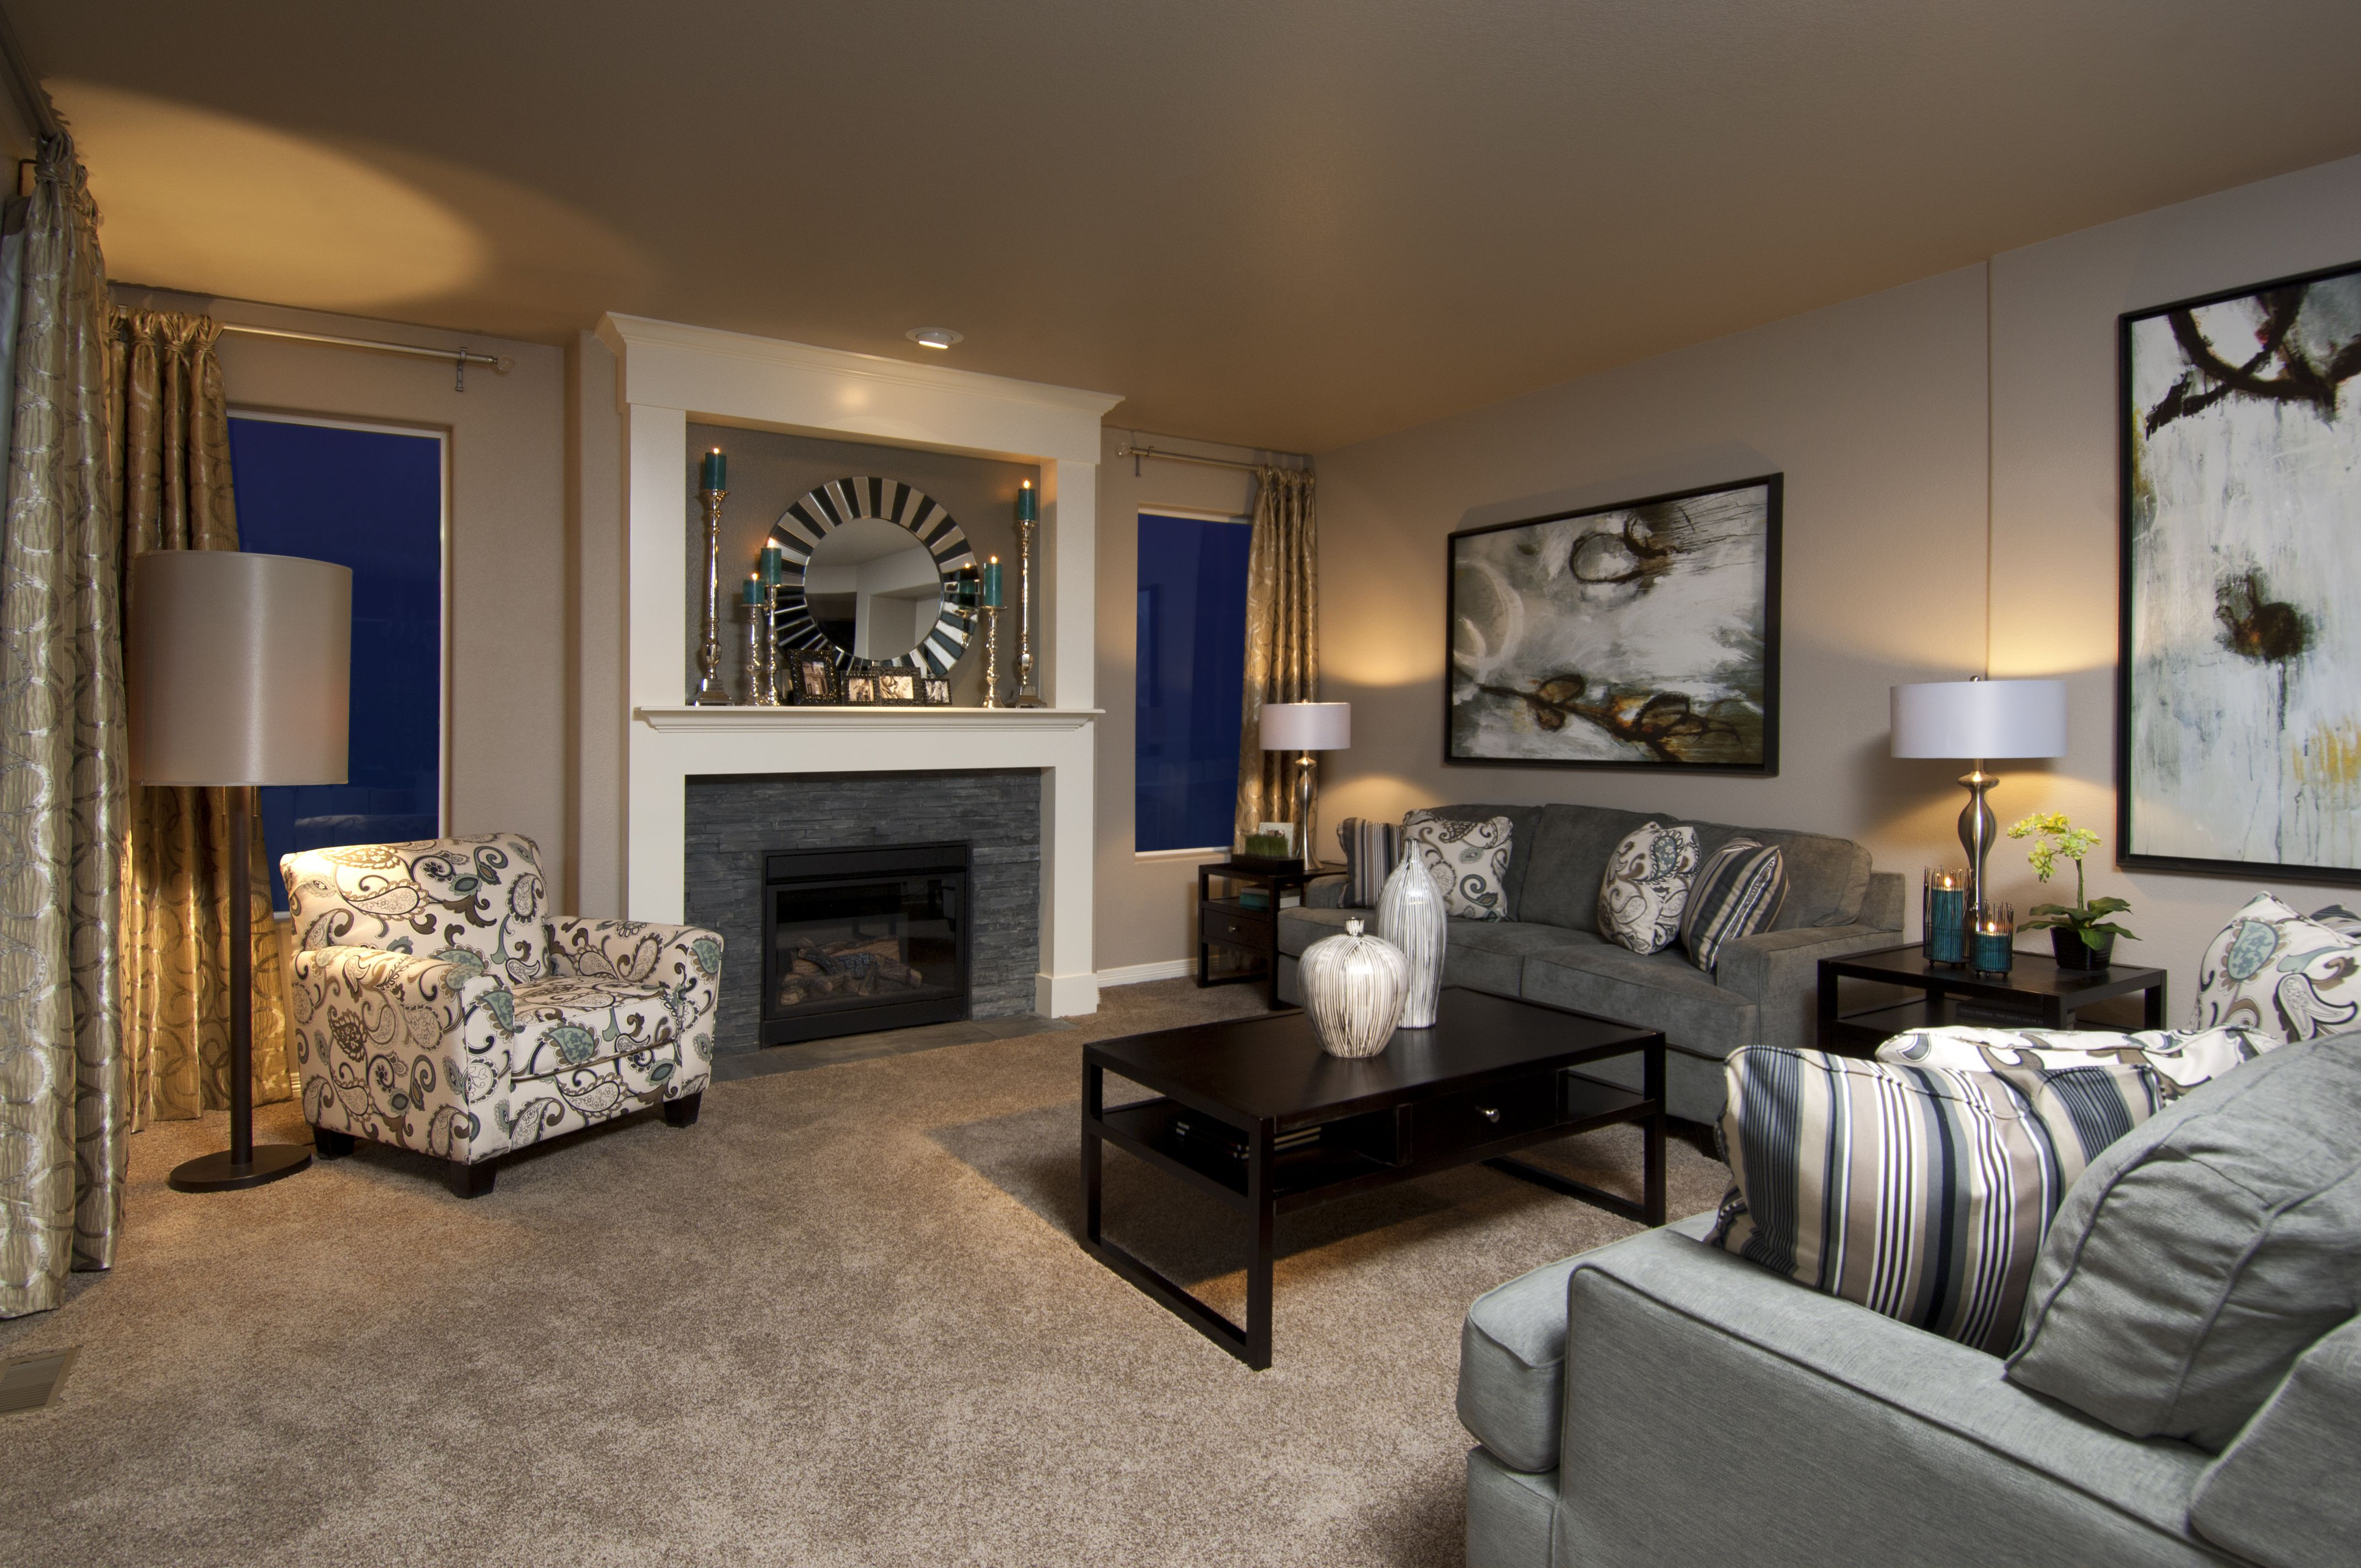 Colorado Springs New Homes Home Design   Reunion Homes Interior Design    Christy Cassidy Photography